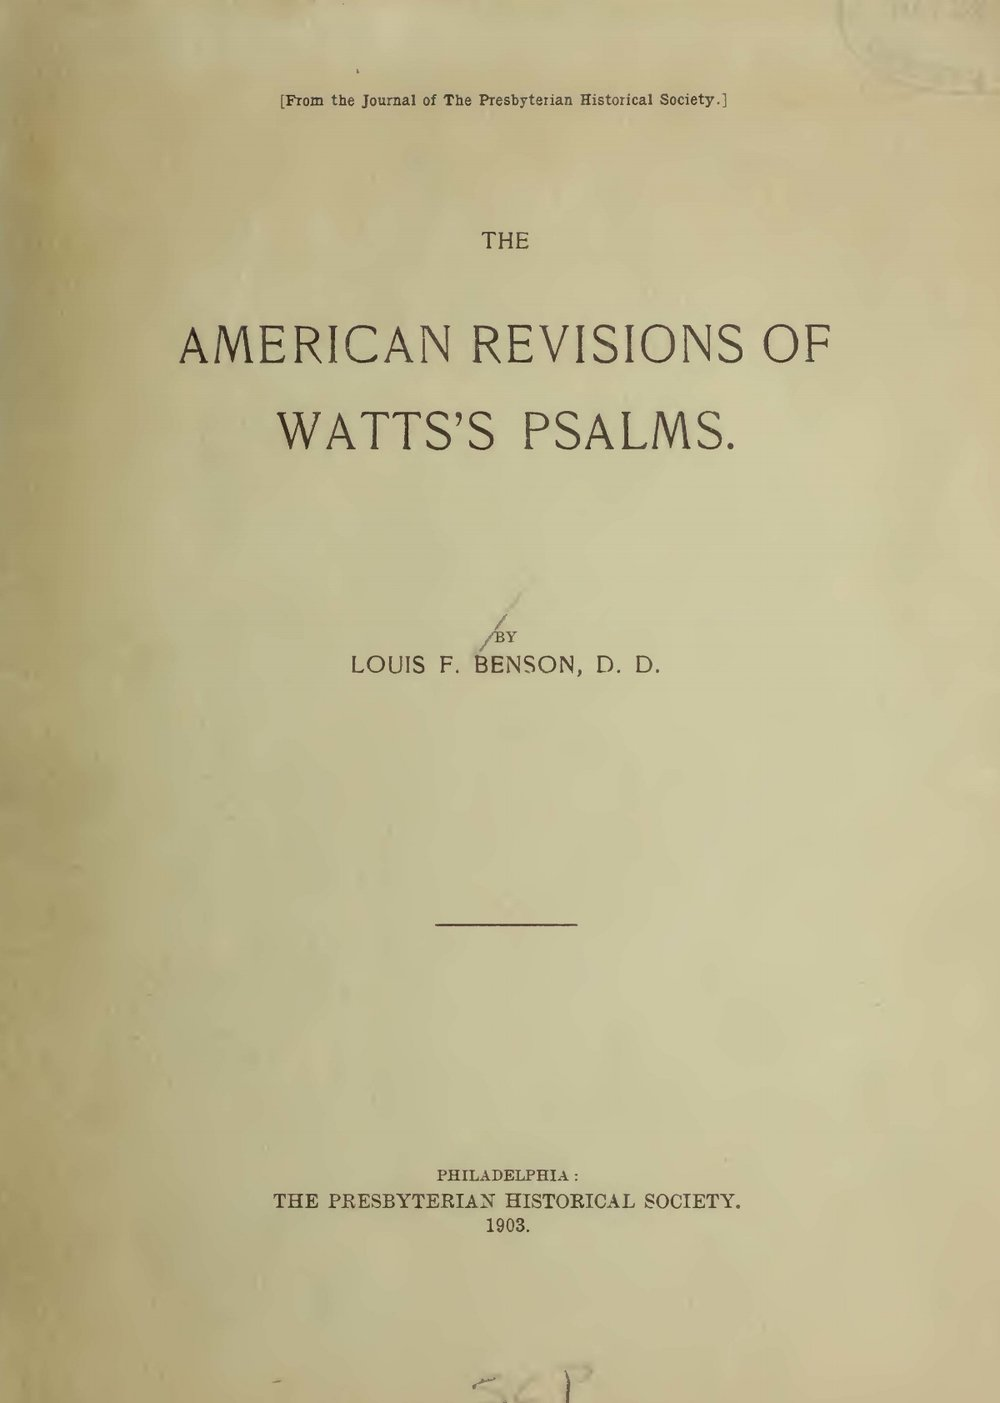 Benson, Louis FitzGerald, The American Revisions of Watts's Psalms Title Page.jpg